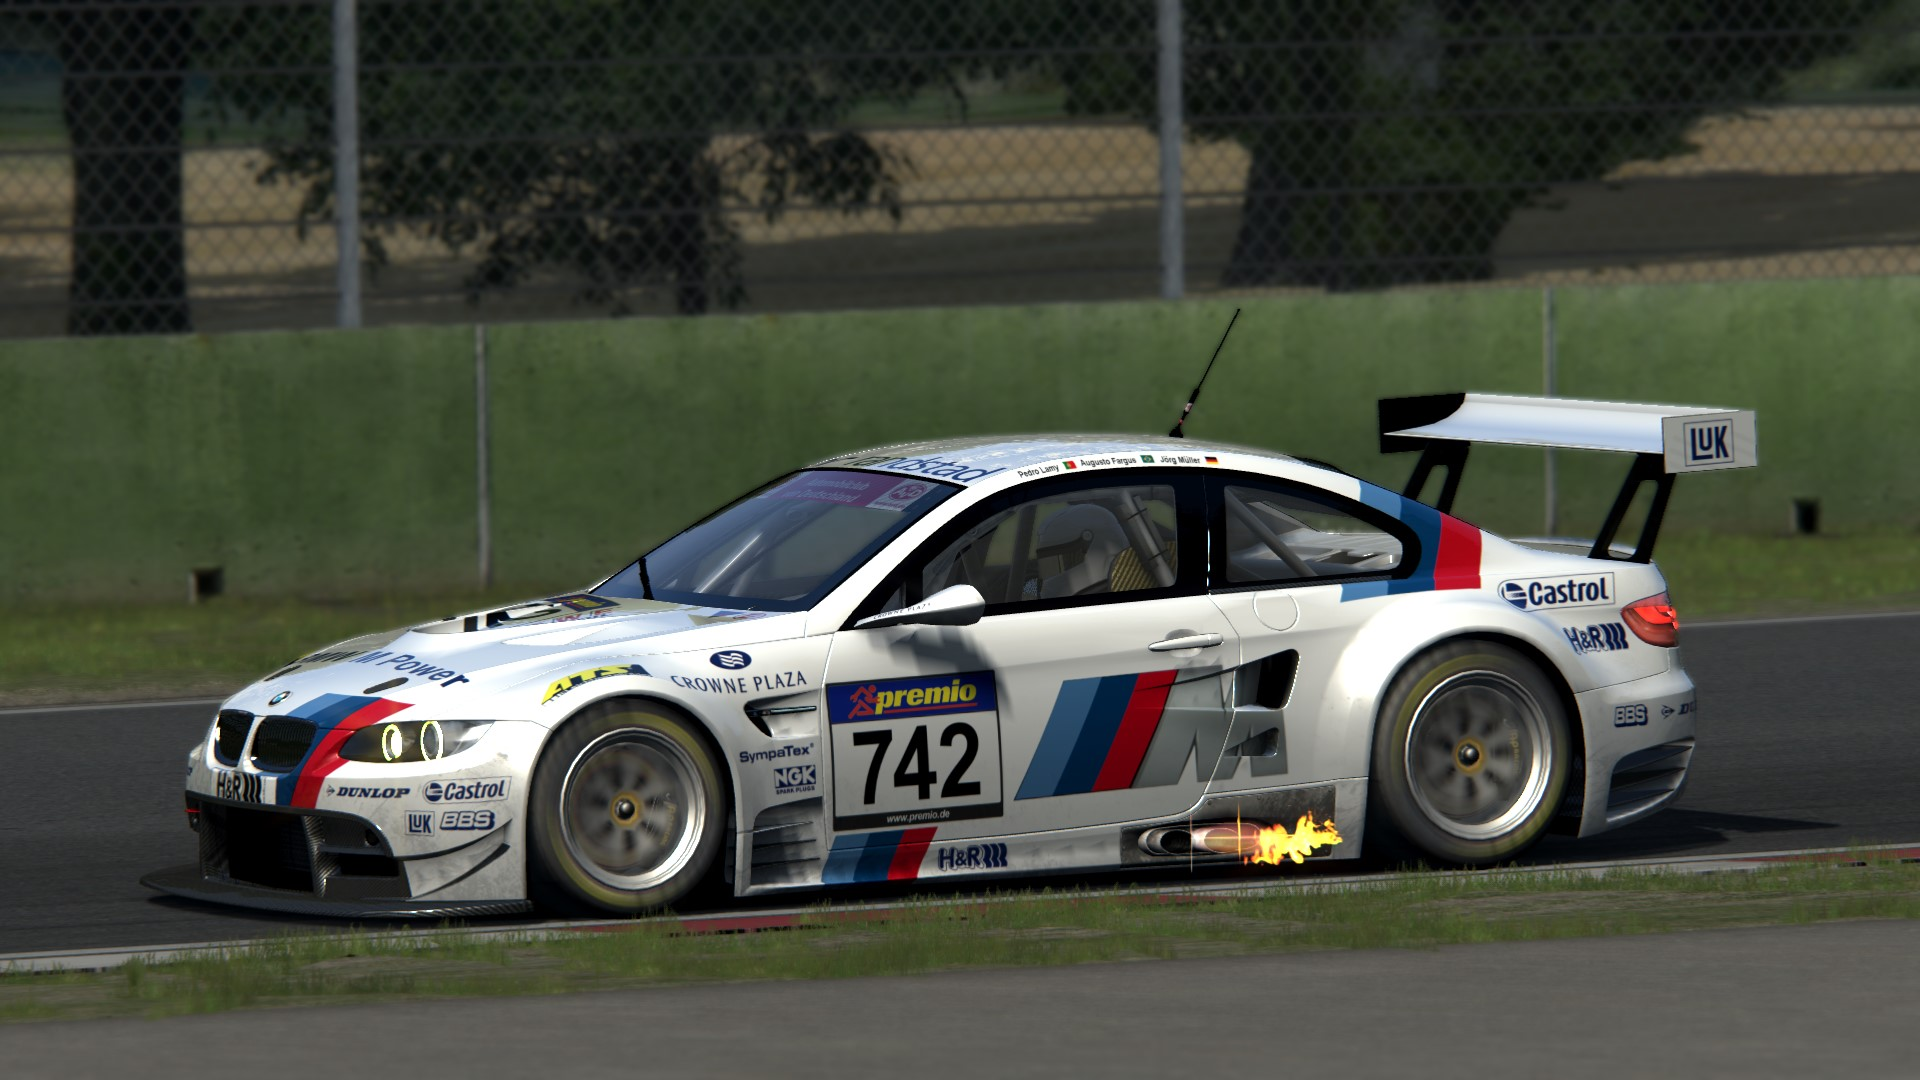 Screenshot_bmw_m3_gt2_imola_17-12-115-19-24-2.jpg